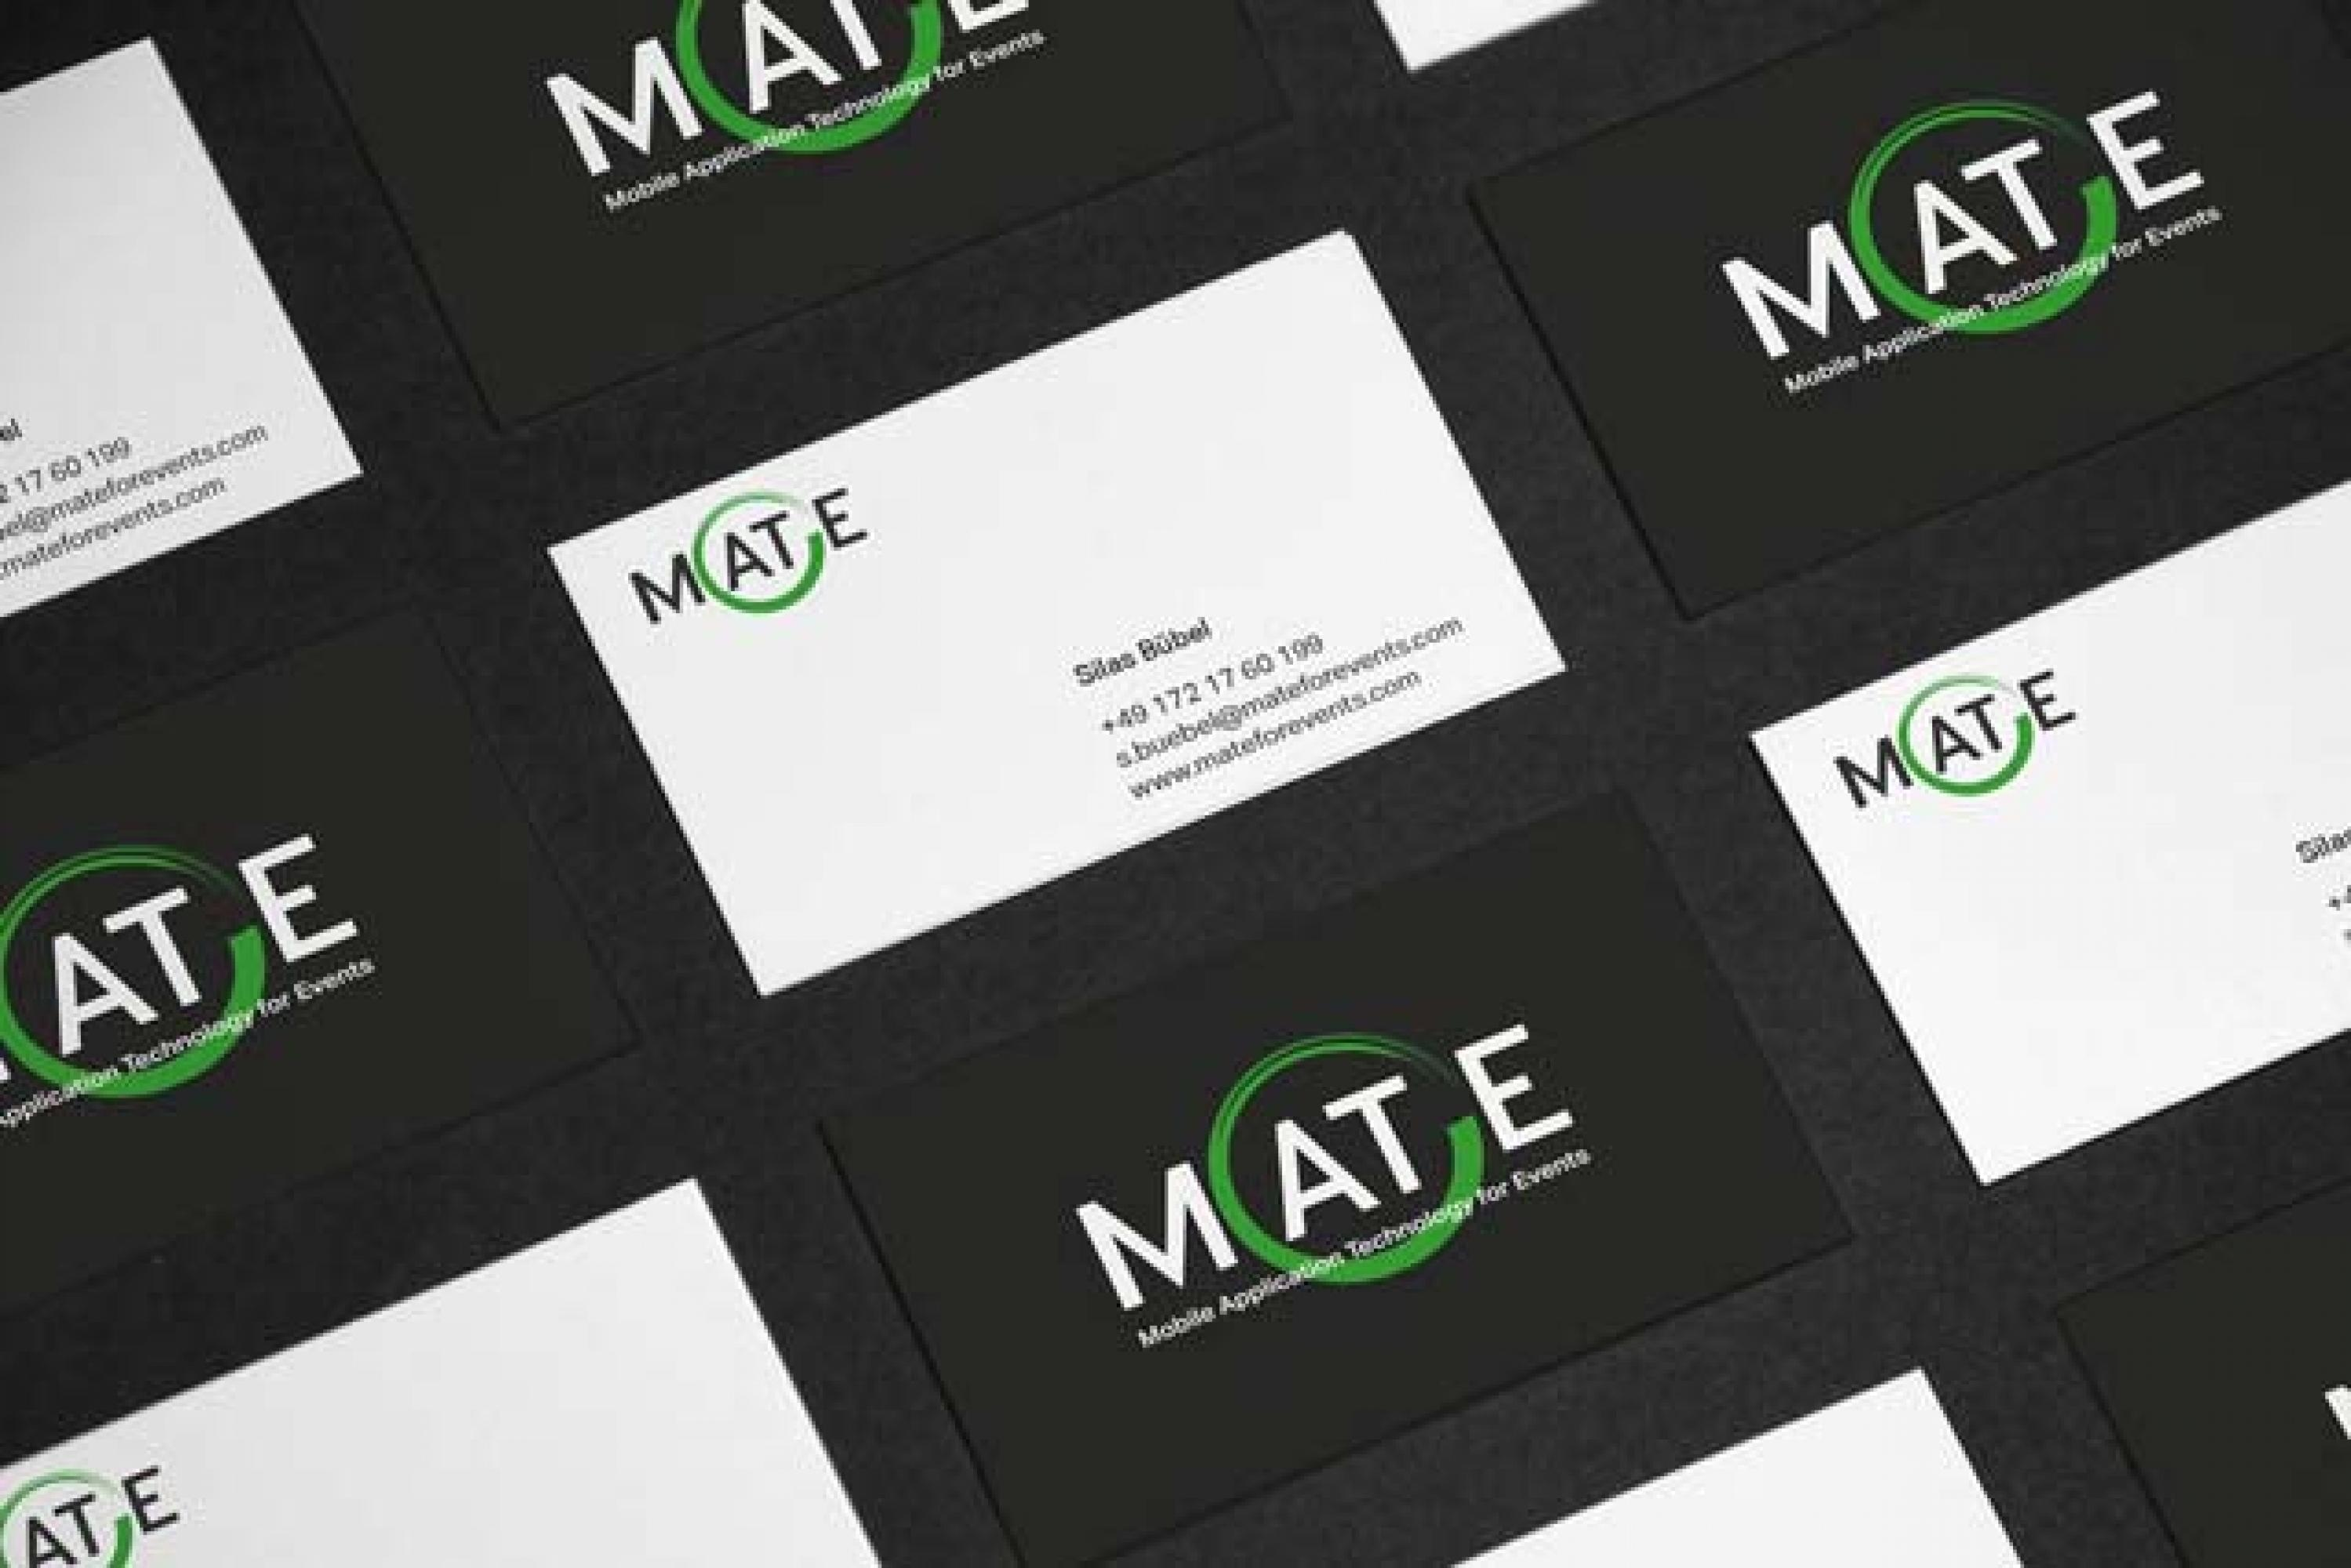 MATE-Logo-design-formlos-berlin06